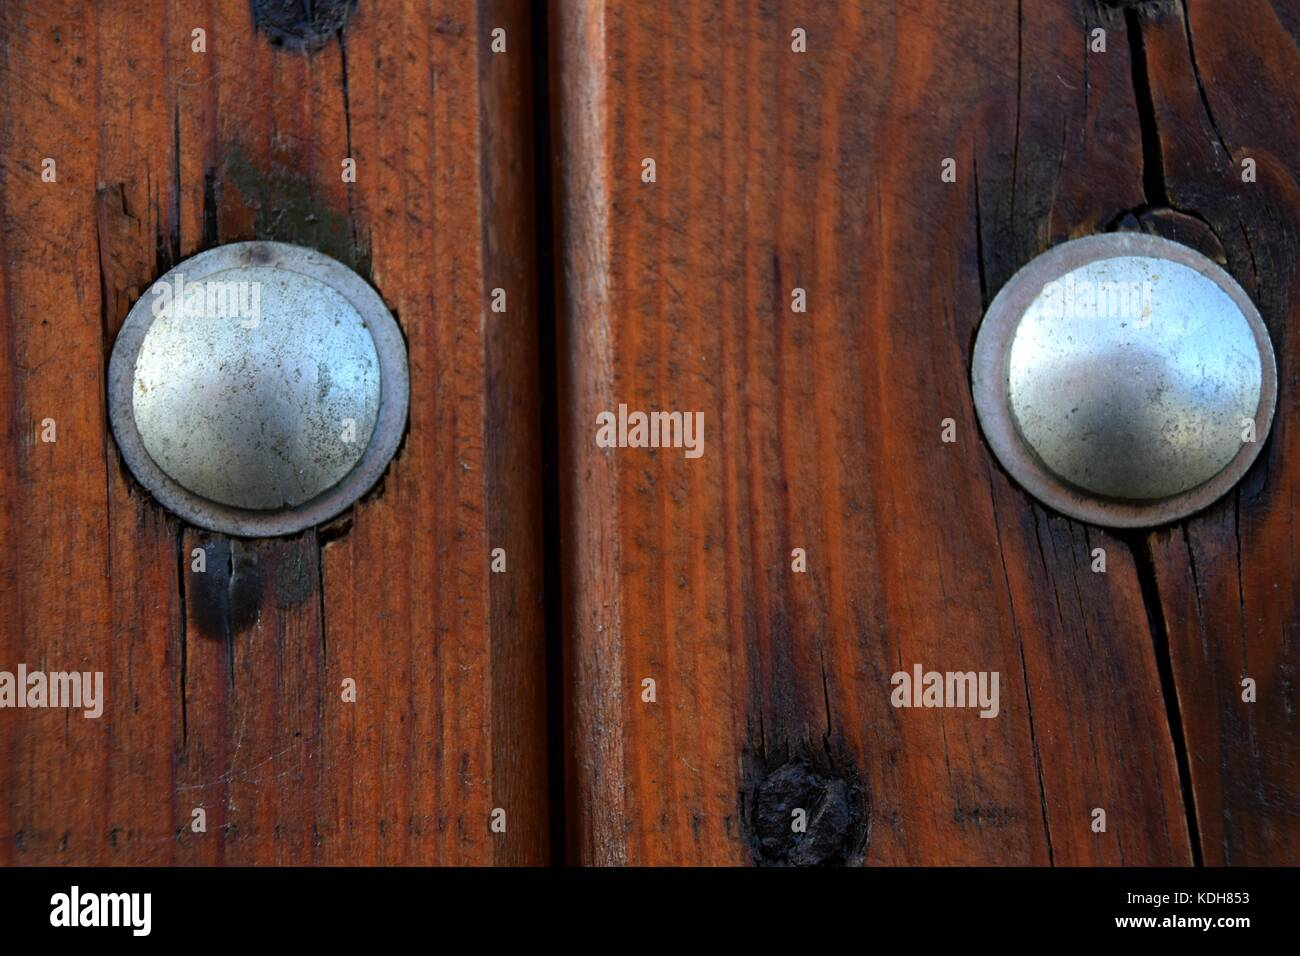 metal bolts stockfotos metal bolts bilder alamy. Black Bedroom Furniture Sets. Home Design Ideas